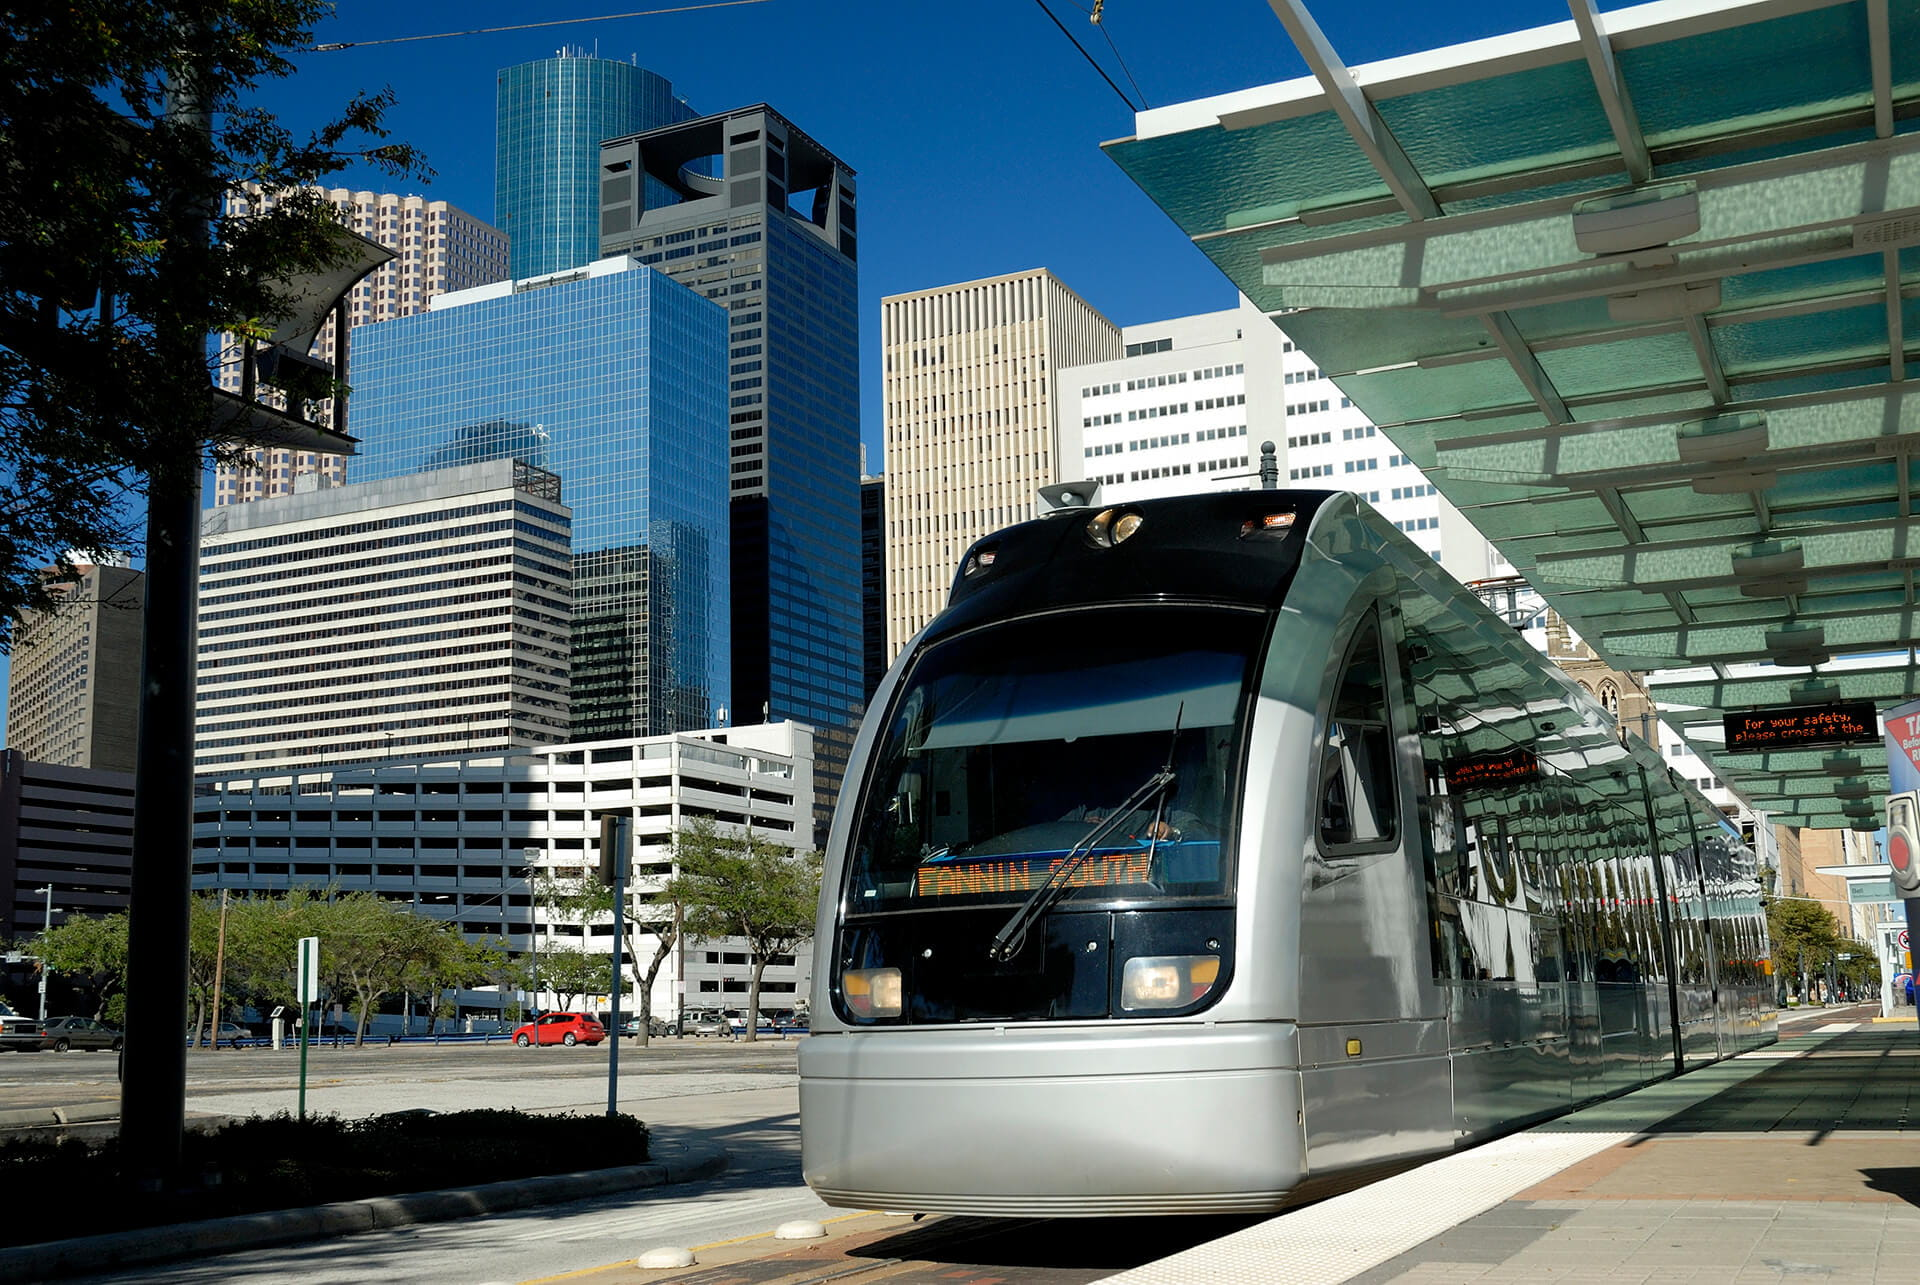 Metro Train at Platform With Modern Skyscrapers In Background